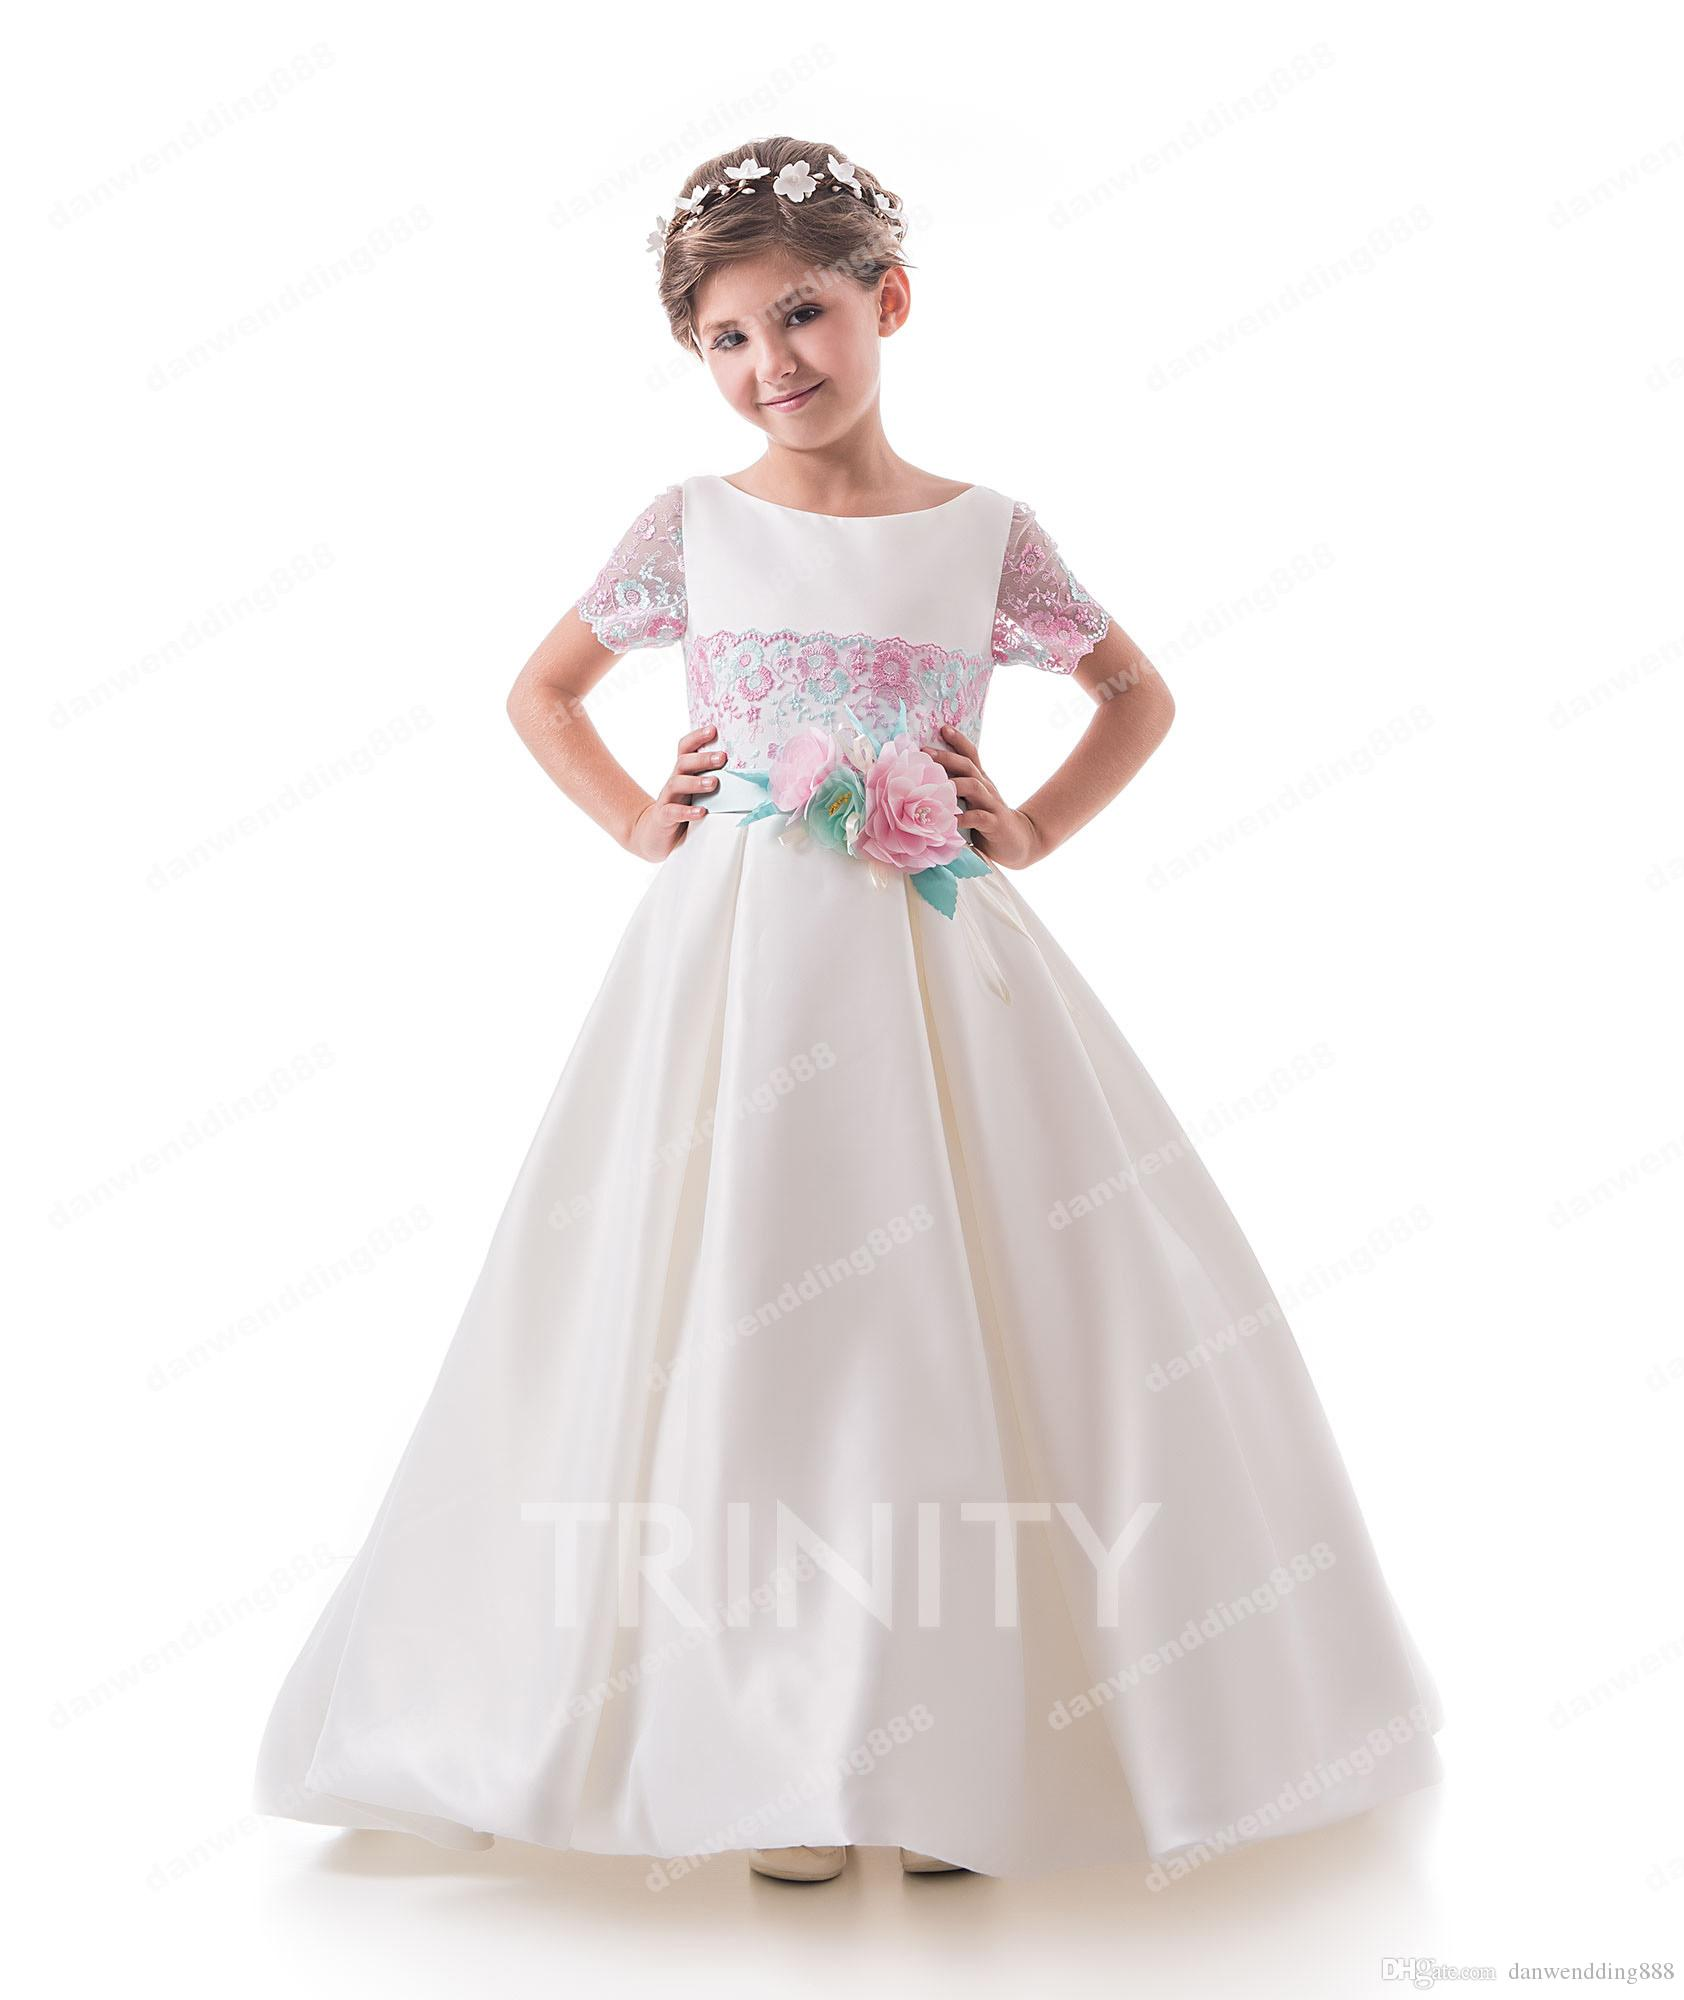 19329aa3882 Pretty Ivory Satin Lace Applique Flower Girl Dresses Princess Dresses Girl S  Pageant Dresses Custom Made Size 2 6 8 10 12 14 KF327252 Young Girls Party  ...